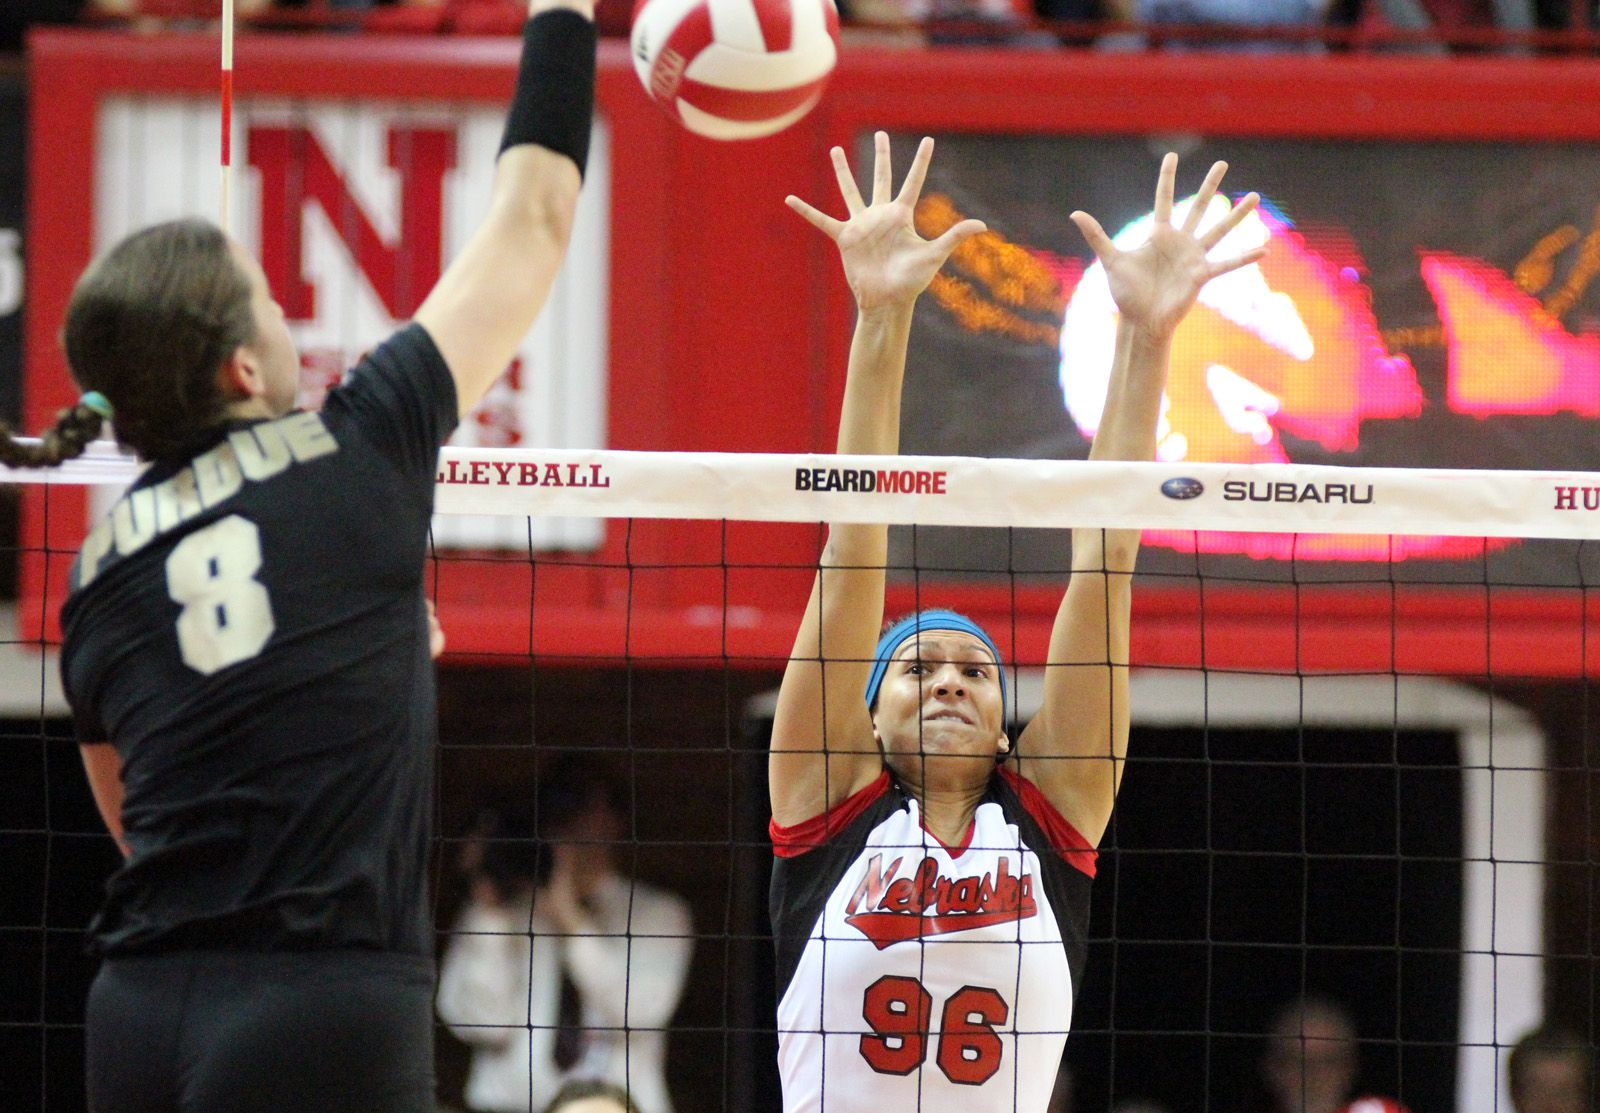 Husker Super Sub Alexa Strange Flexes Her Beach Volleyball Muscle On The Hardwood For A Big Time Block At The Coliseum Beach Volleyball Time Blocking Muscle